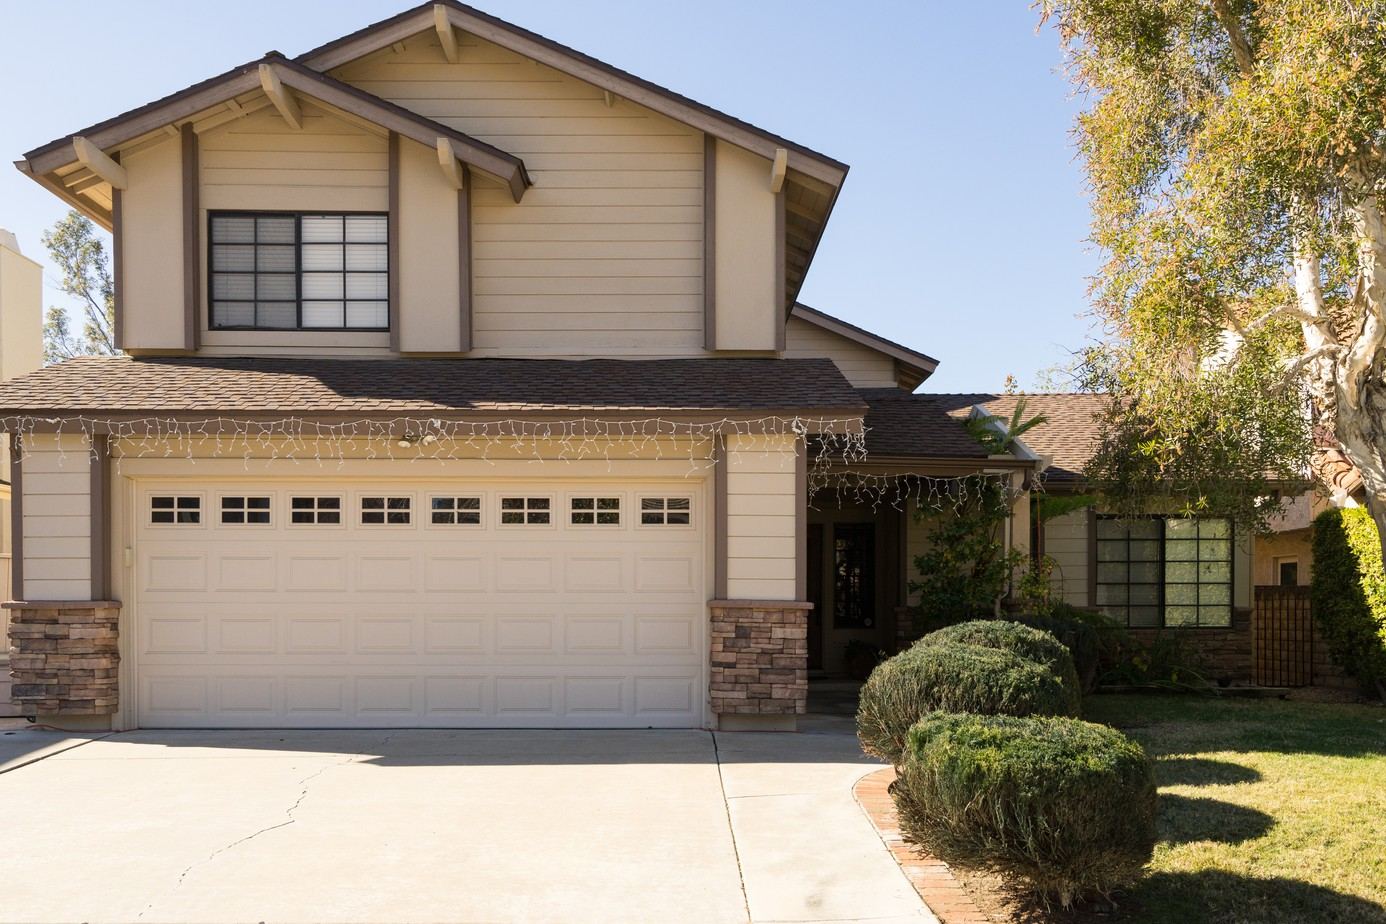 Frontyard backyard exterior house remodel photos san diego - Exterior paint coverage on stucco ...